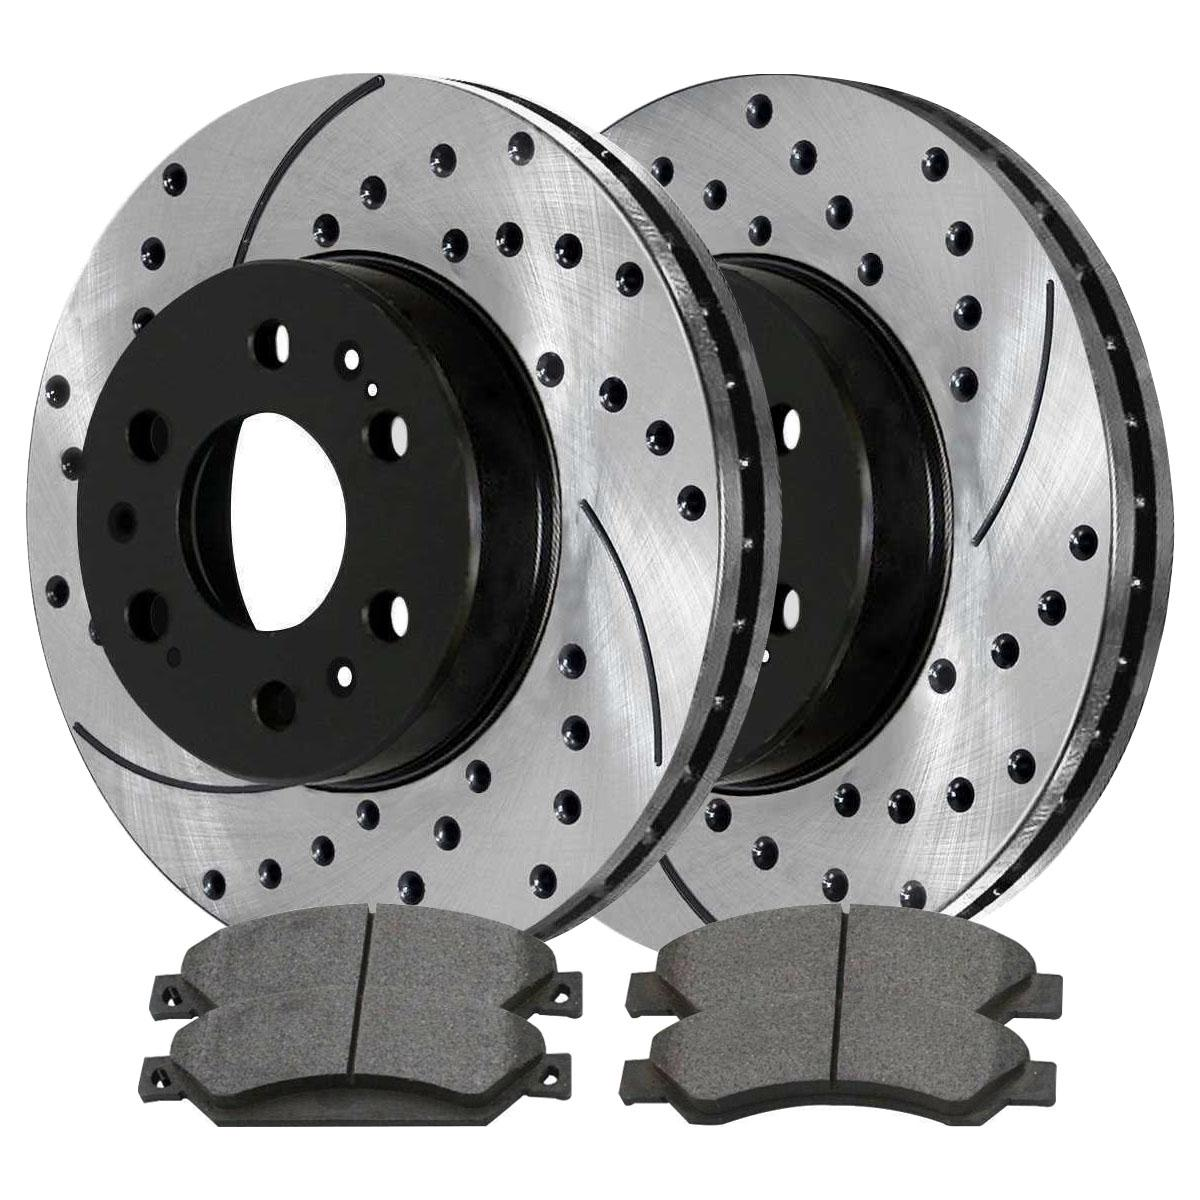 AutoShack BRKPKG0468 Front Drilled and Slotted Brake Rotors and Ceramic Pads